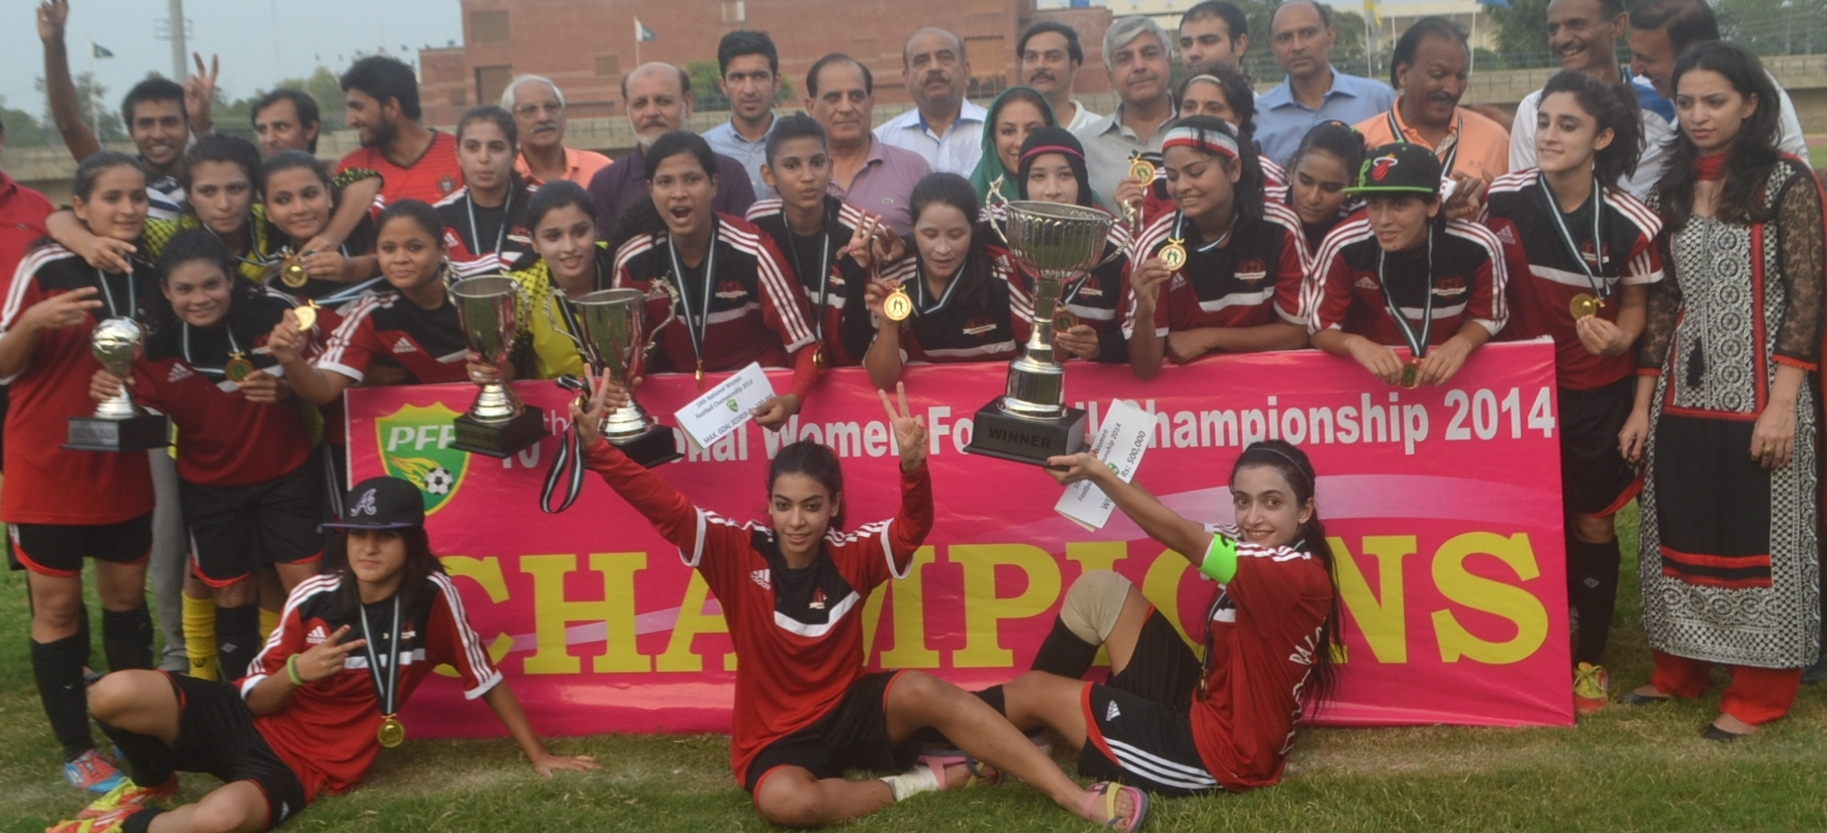 Balochistan United WFC thrash WAPDA 7-0 to win National Women's Championship in style